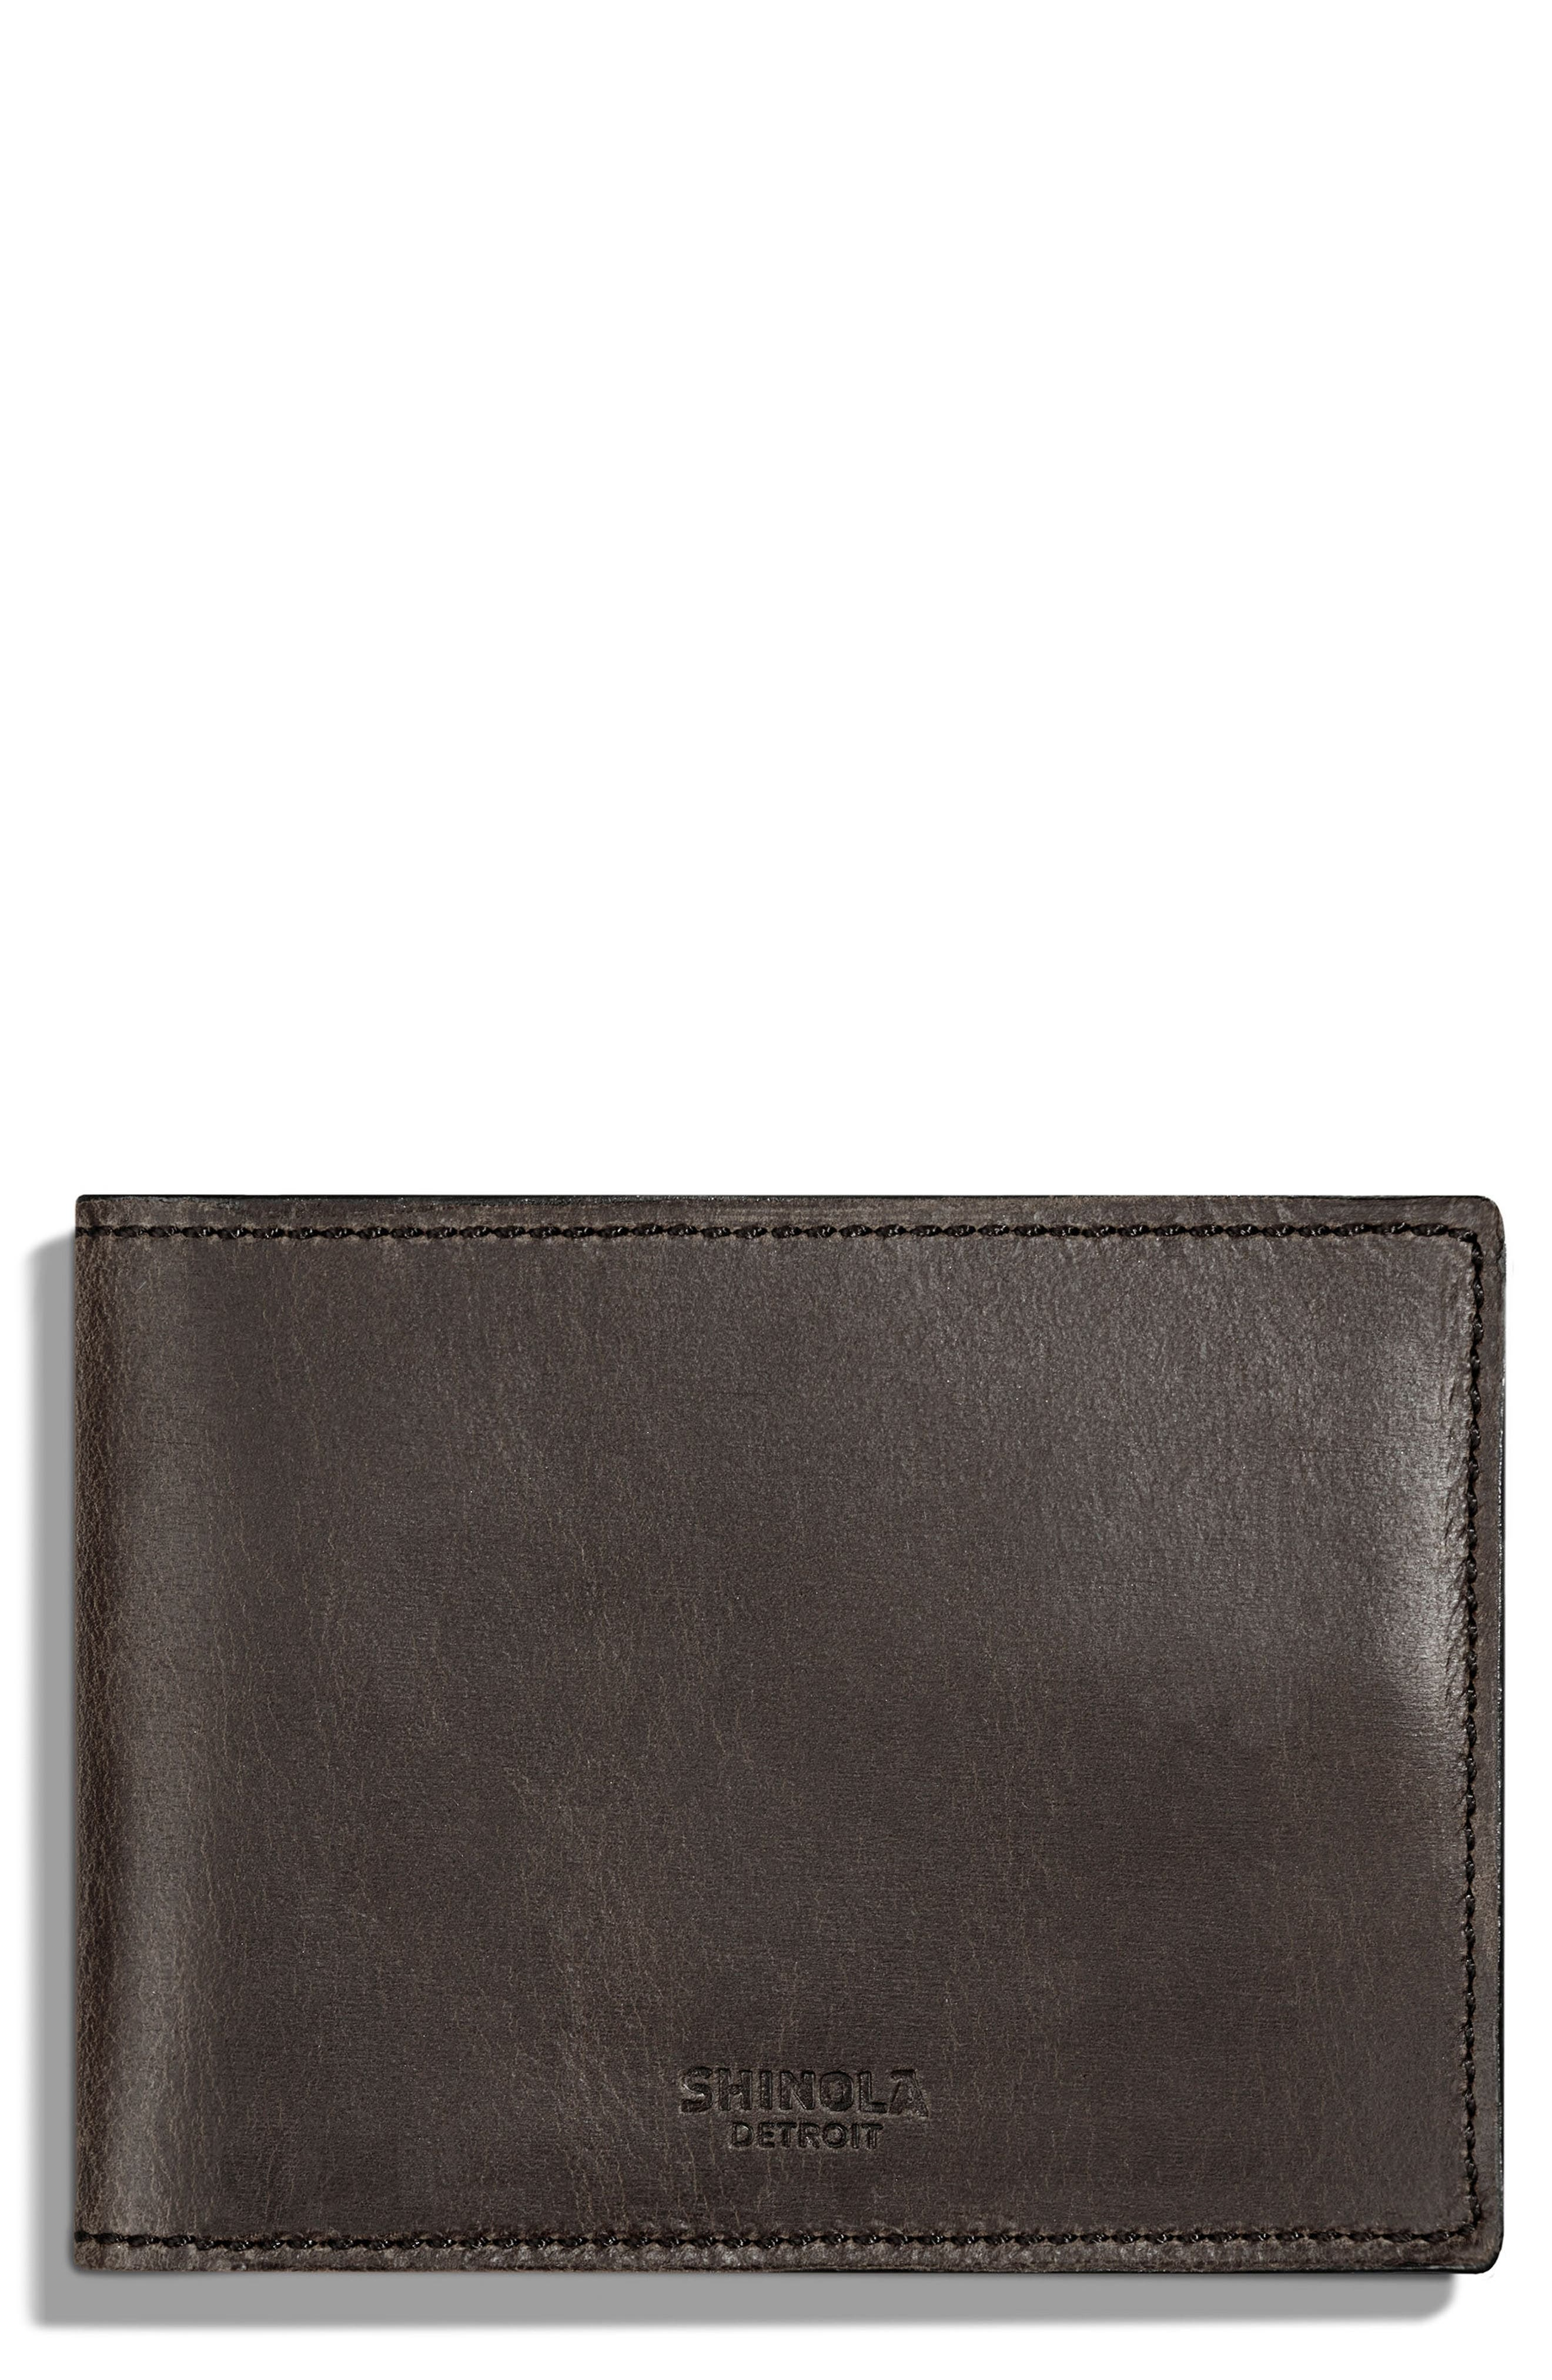 Leather Wallet,                         Main,                         color, Charcoal